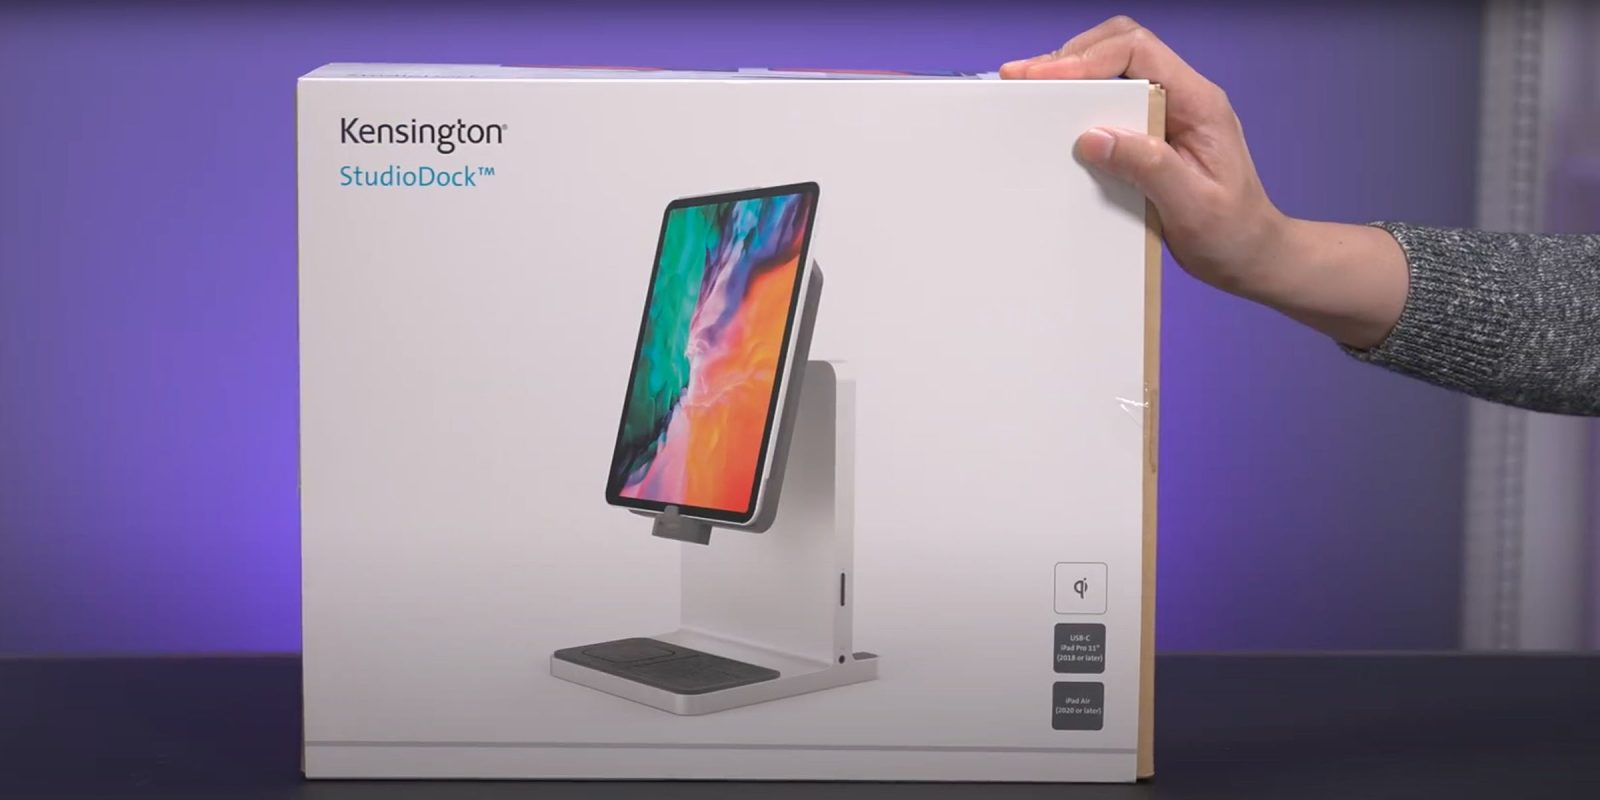 New Kensington StudioDock on the way for 2021 12.9-inch iPad Pro